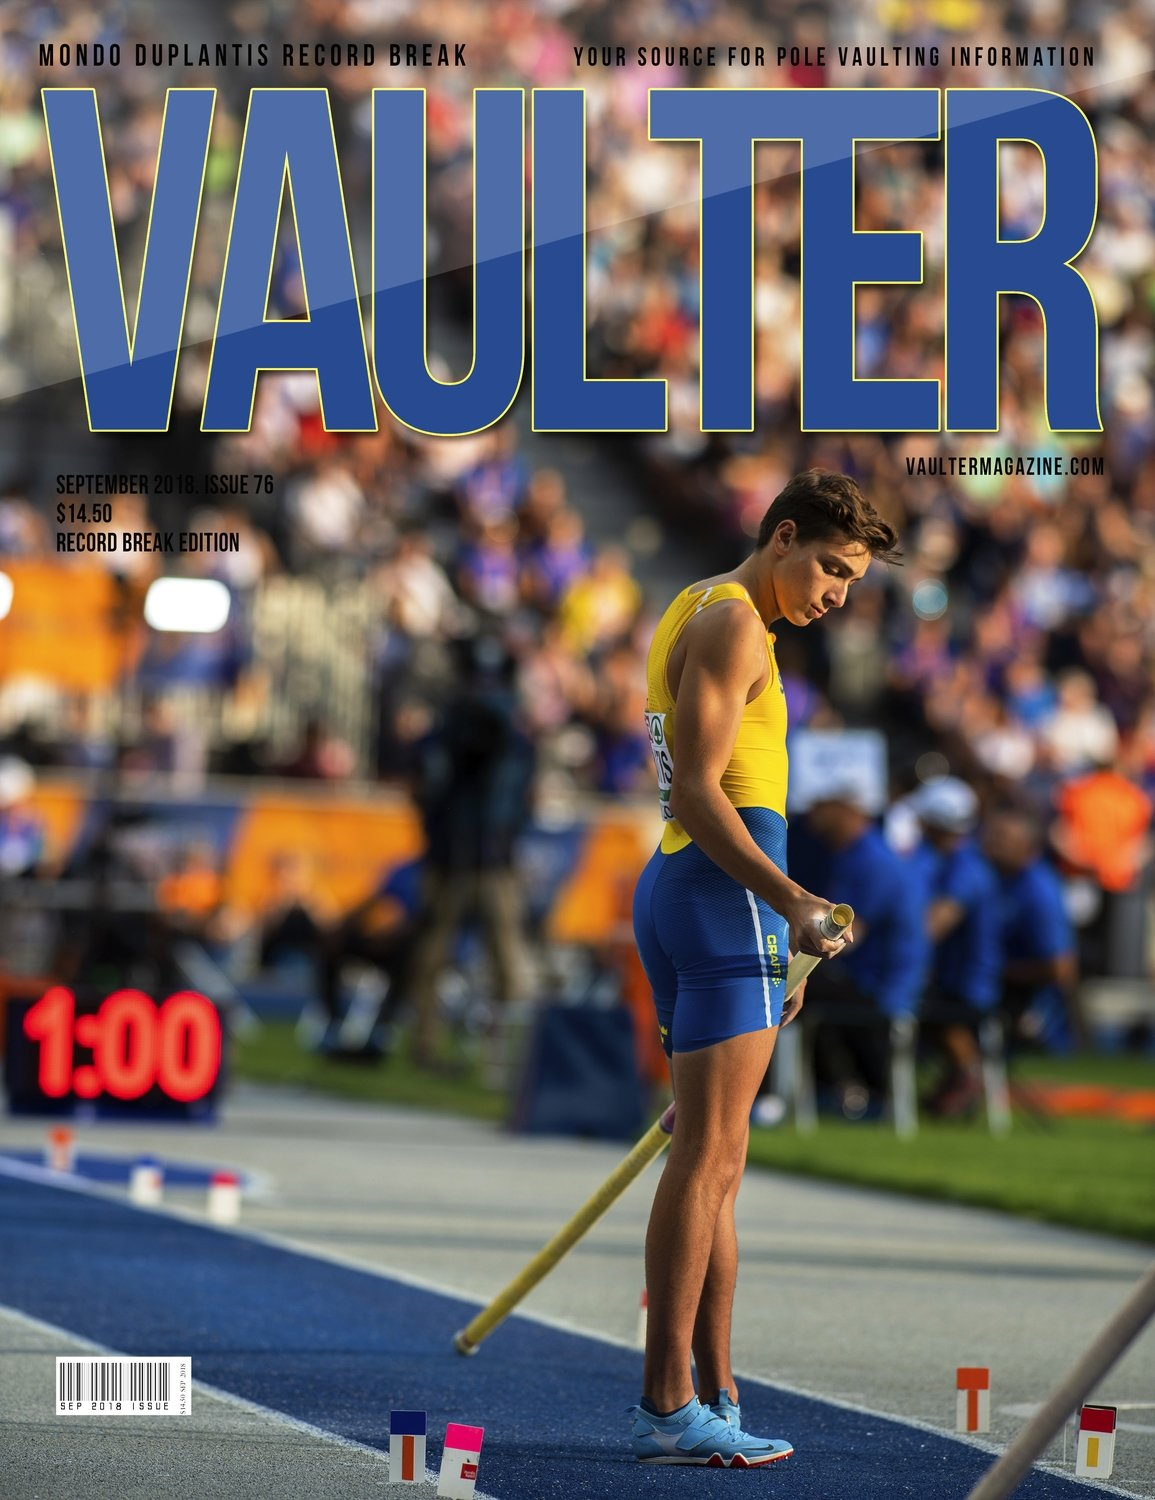 September 2018 Armondo Duplantis Issue of Vaulter Magazine - U.S. Standard Mail